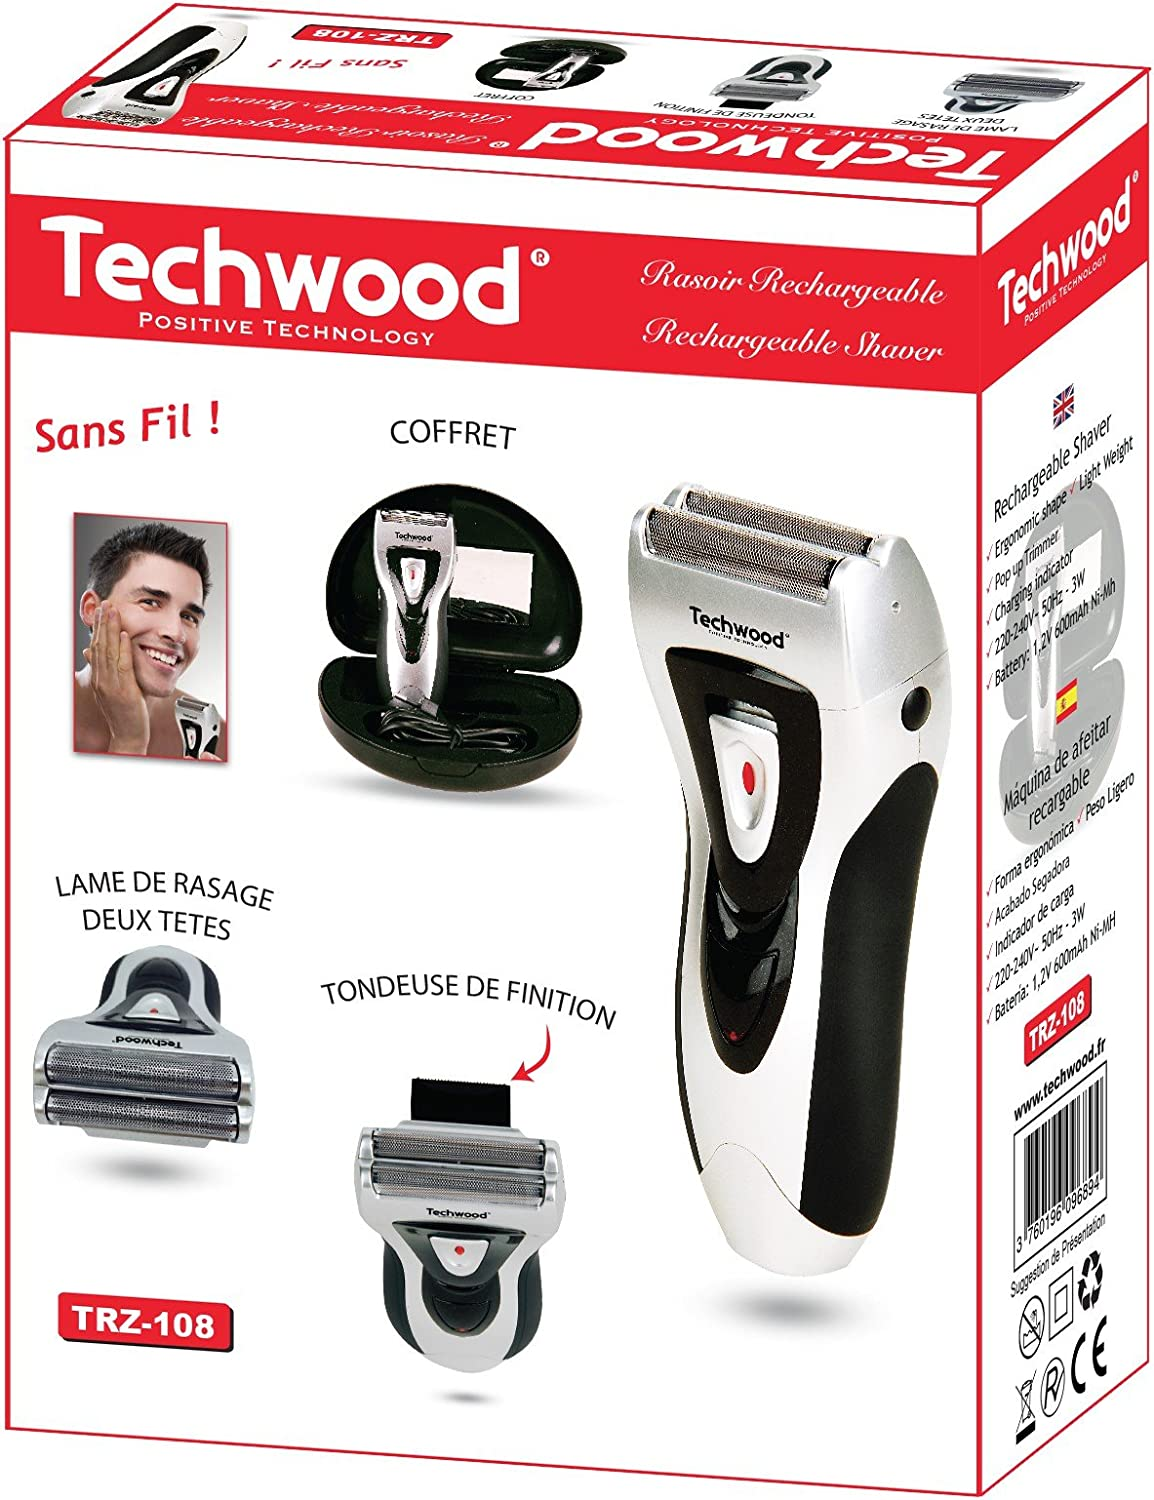 Techwood – Afeitadora recargable – trz-108: Amazon.es: Salud y ...